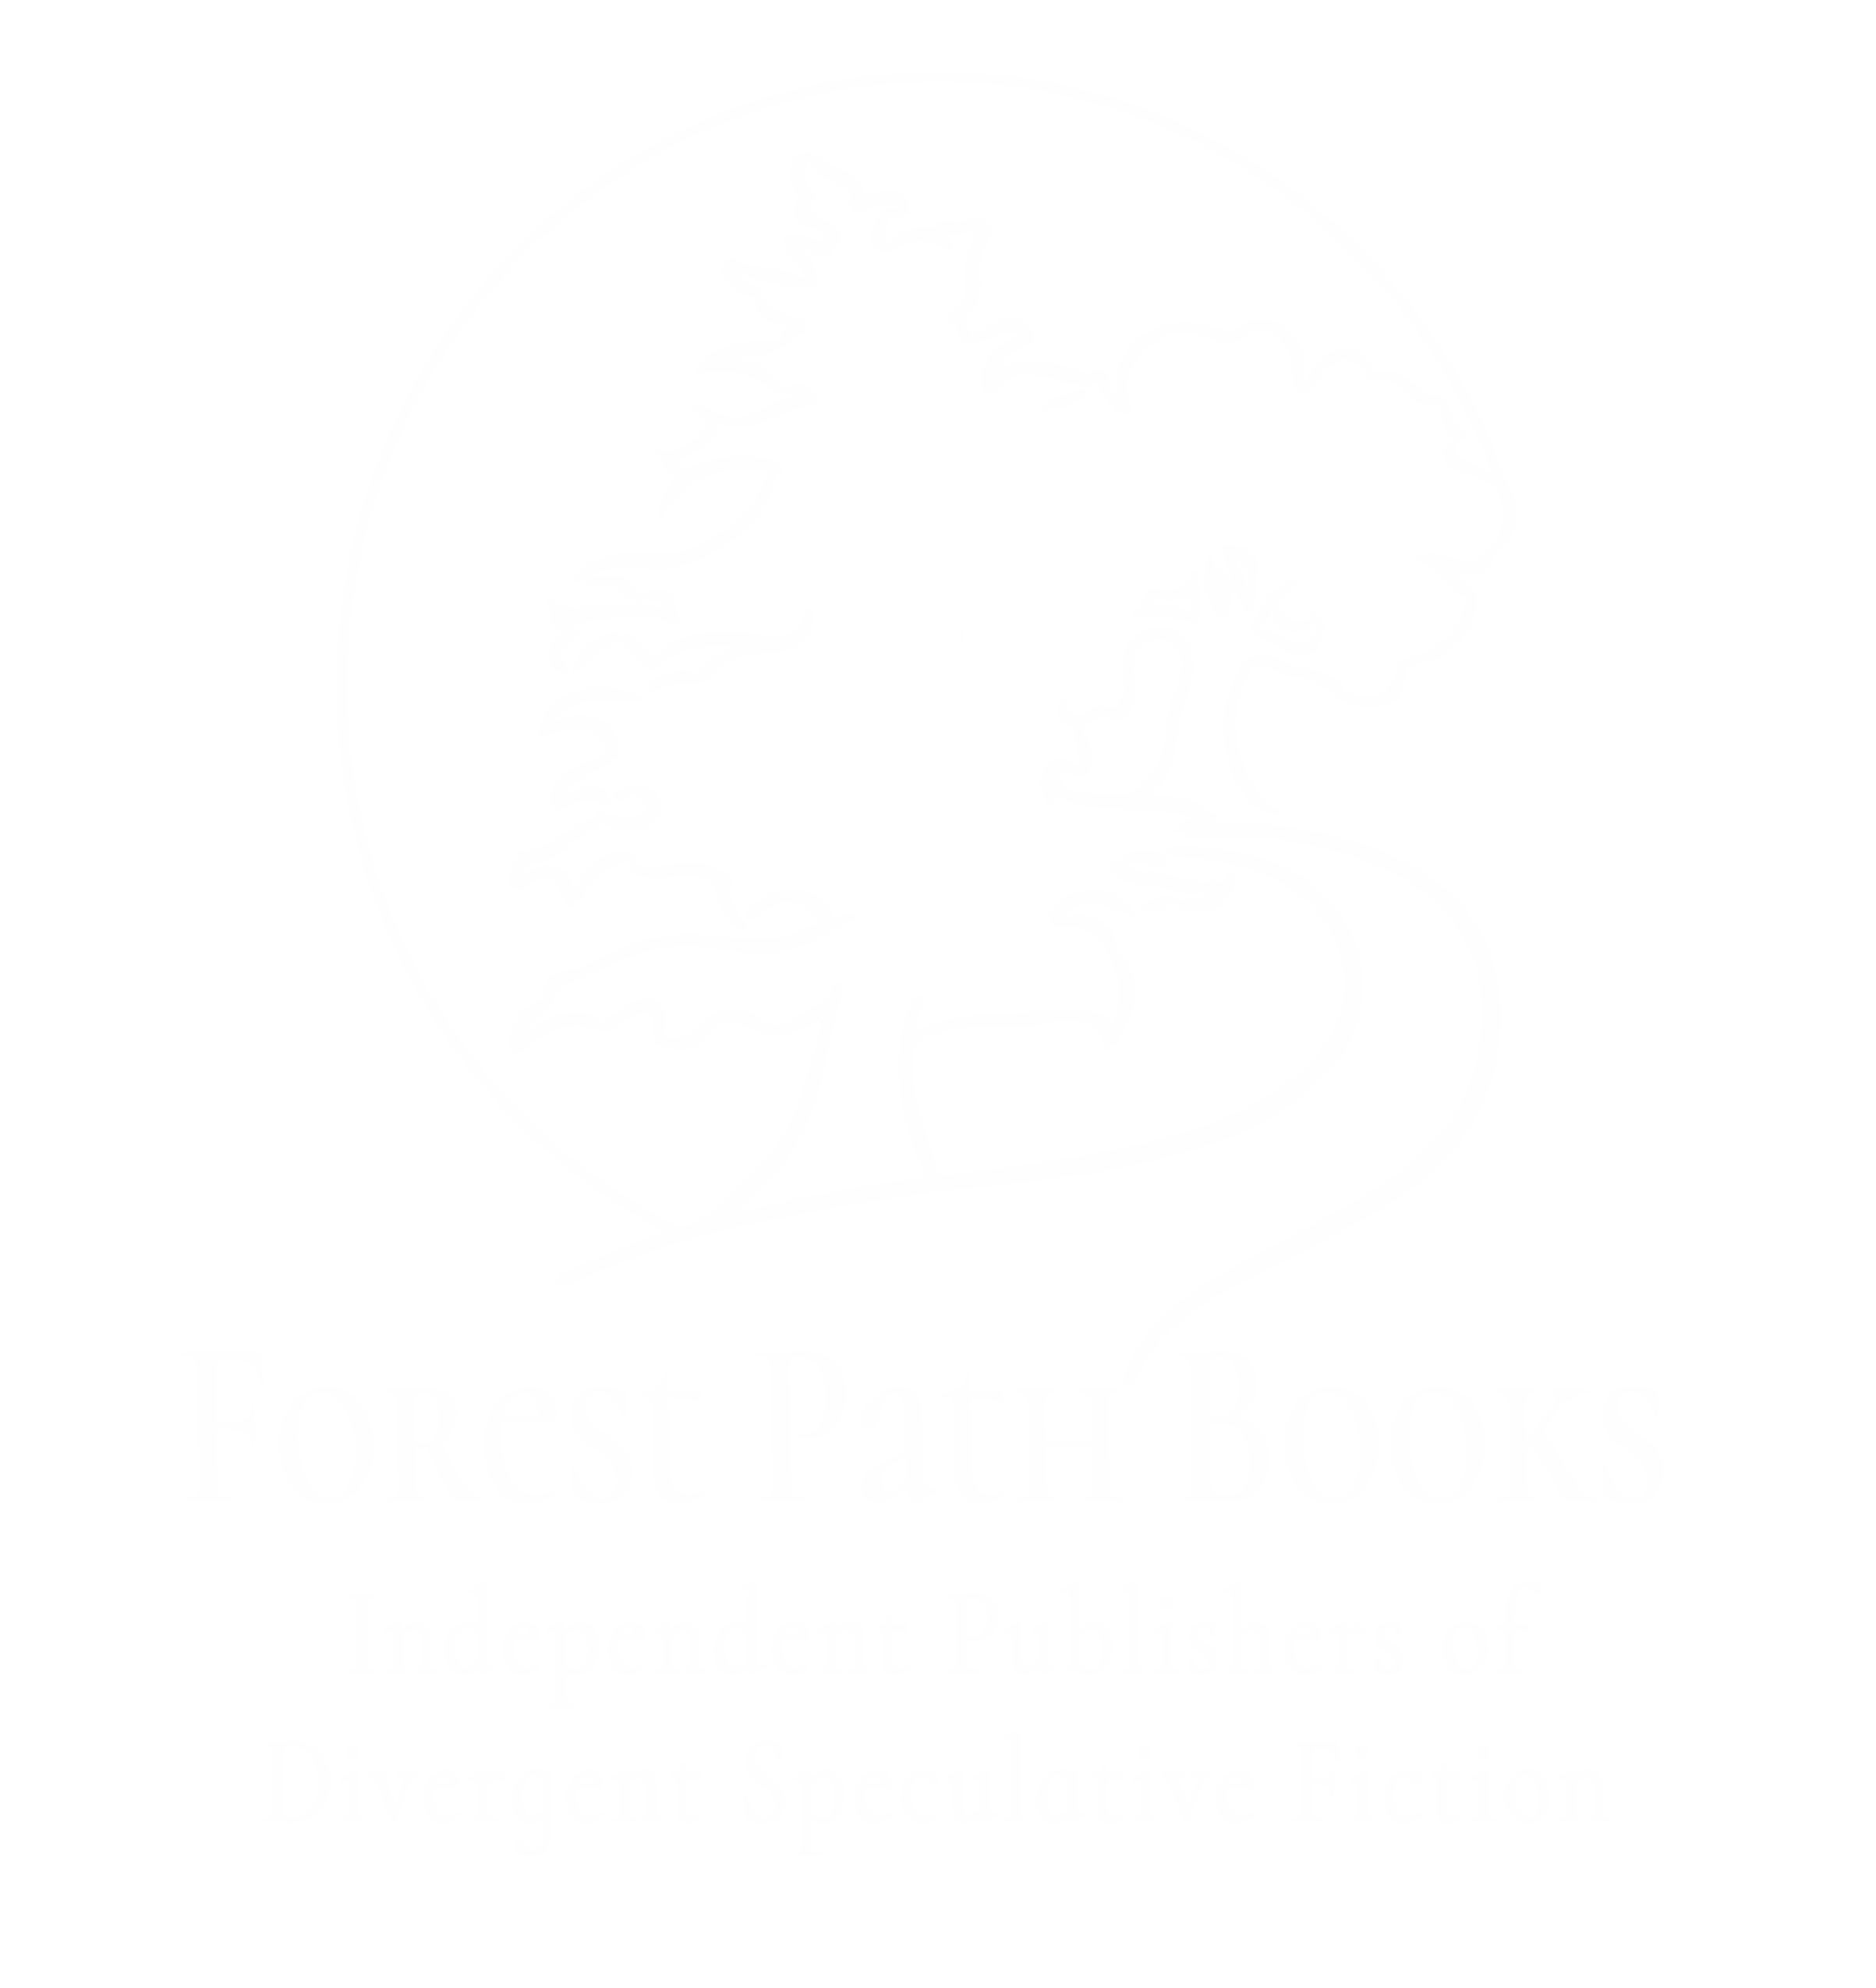 Forest Path Books, Independent Publisher of Divergent Speculative Fiction